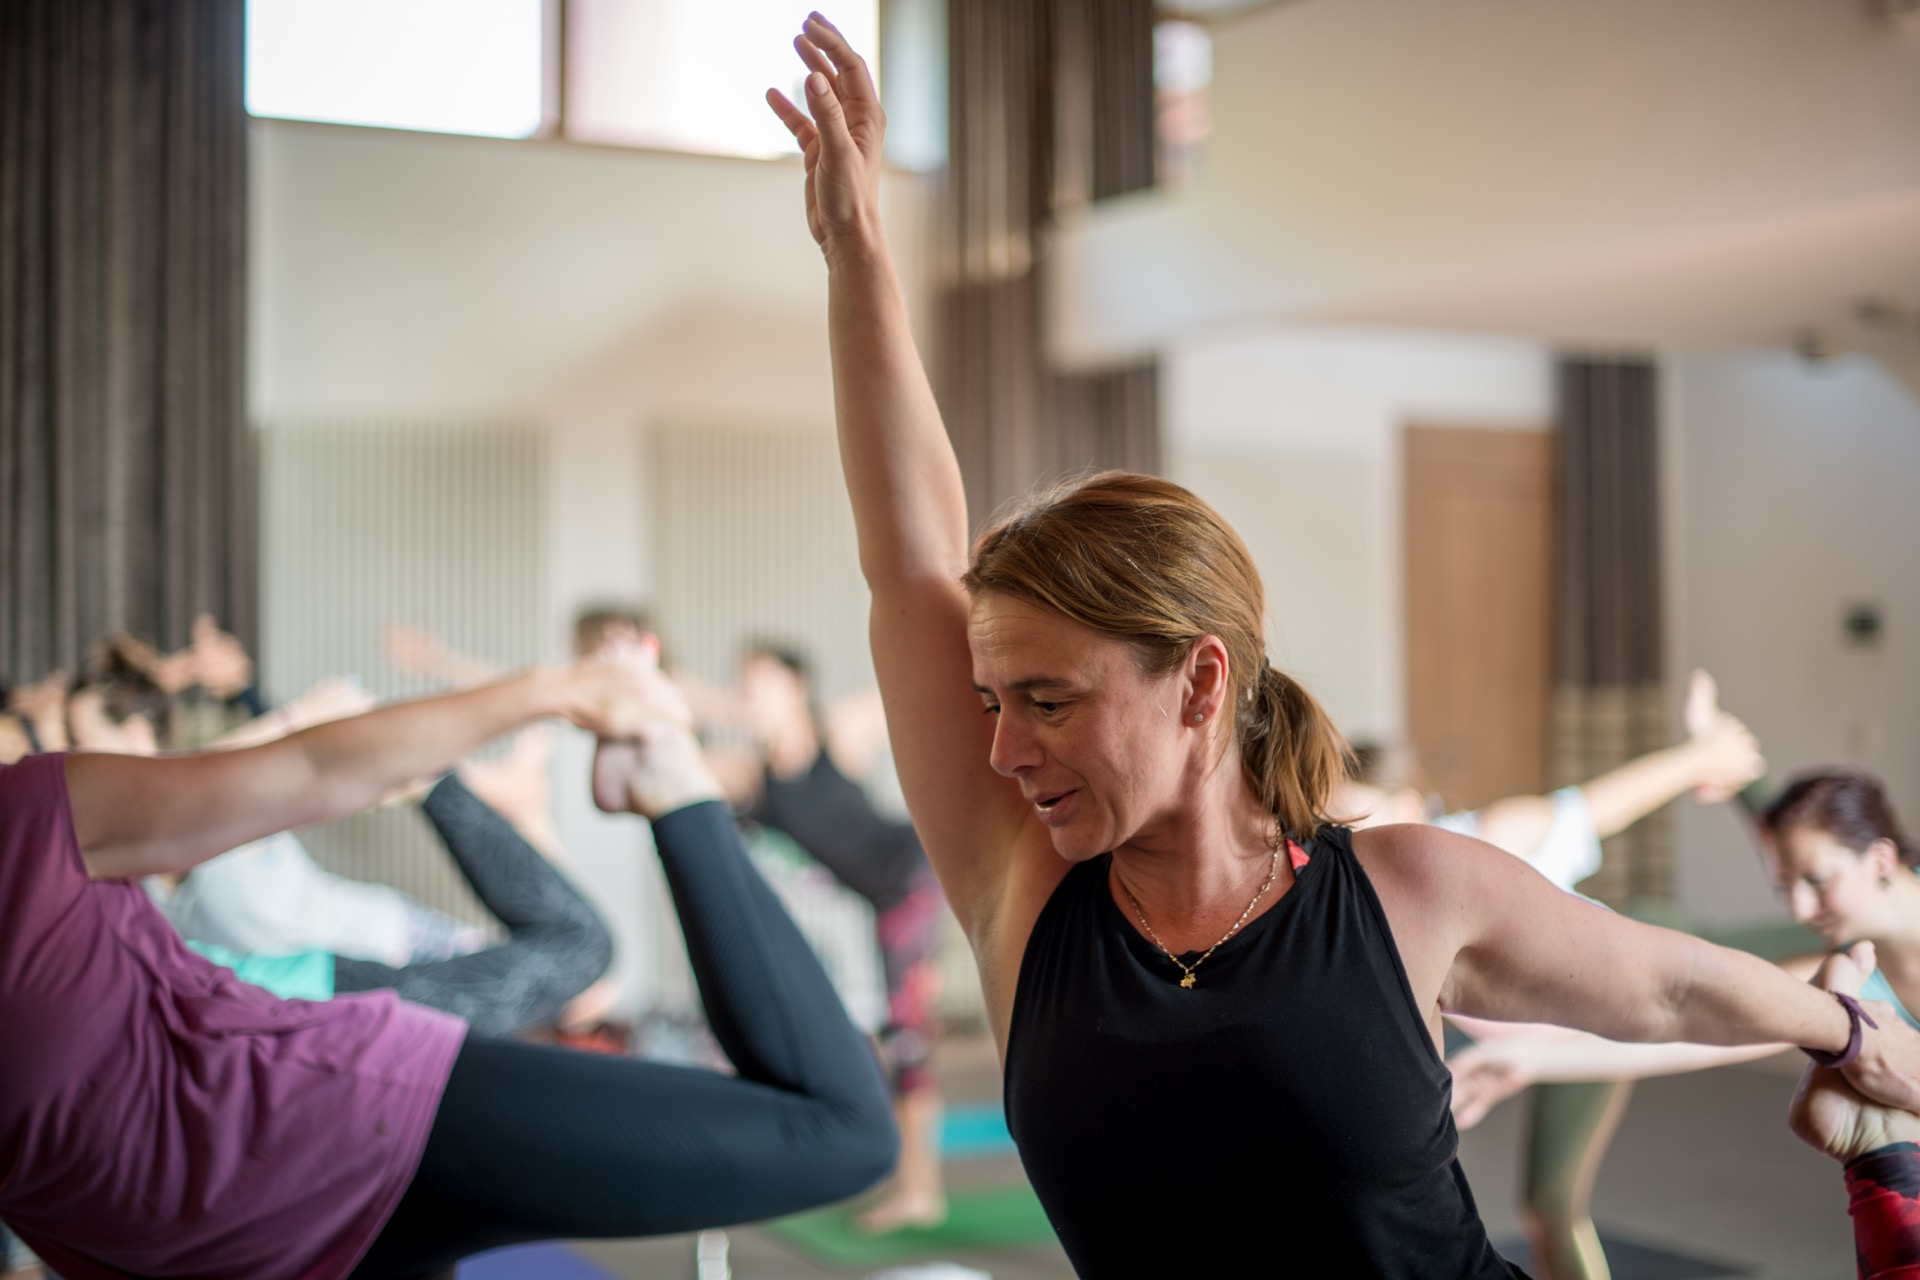 Hie-Kim-Friends-2019-Yoga-Retreat-Alina-Matis-Photography-057 - Hie Kim Yoga - Yoga Retreat - Yoga Workshops und Reisen